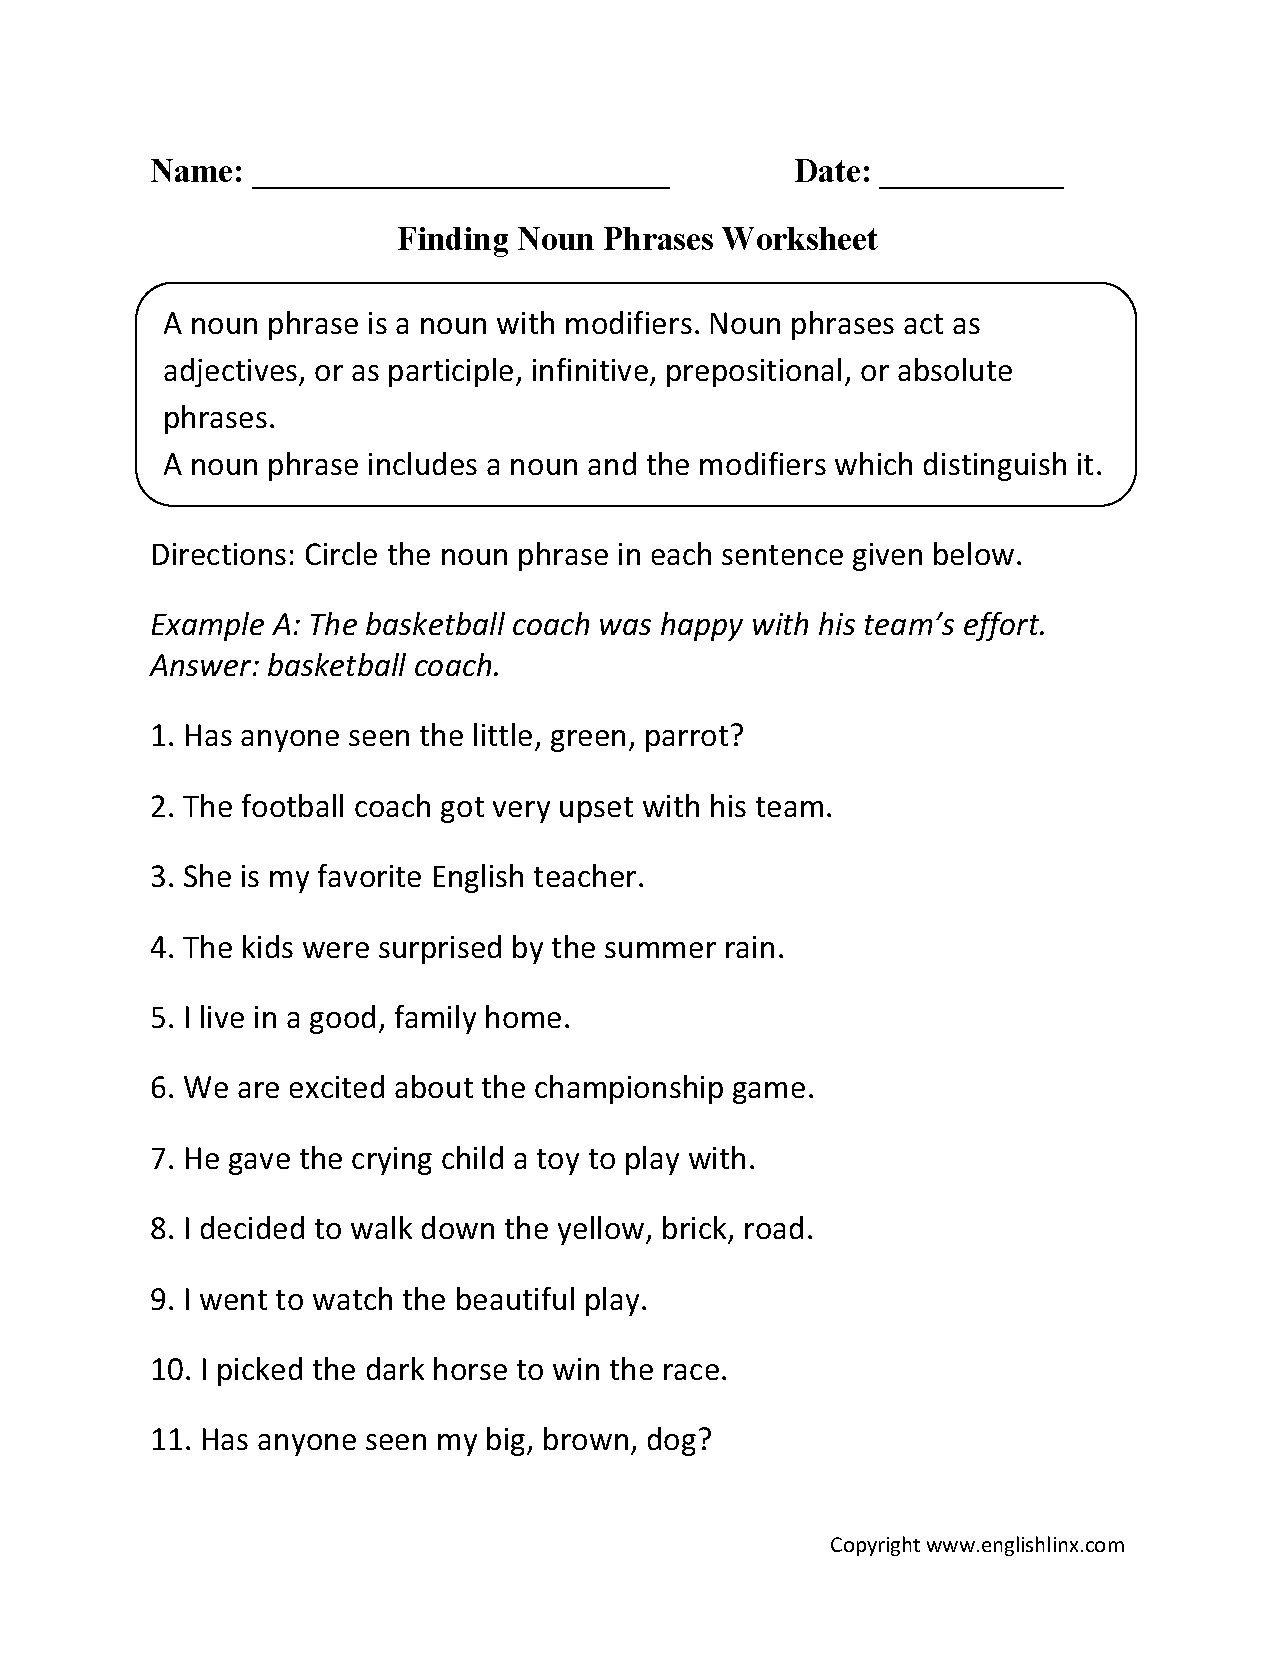 Noun Phrases Worksheets Englishlinx Com Board